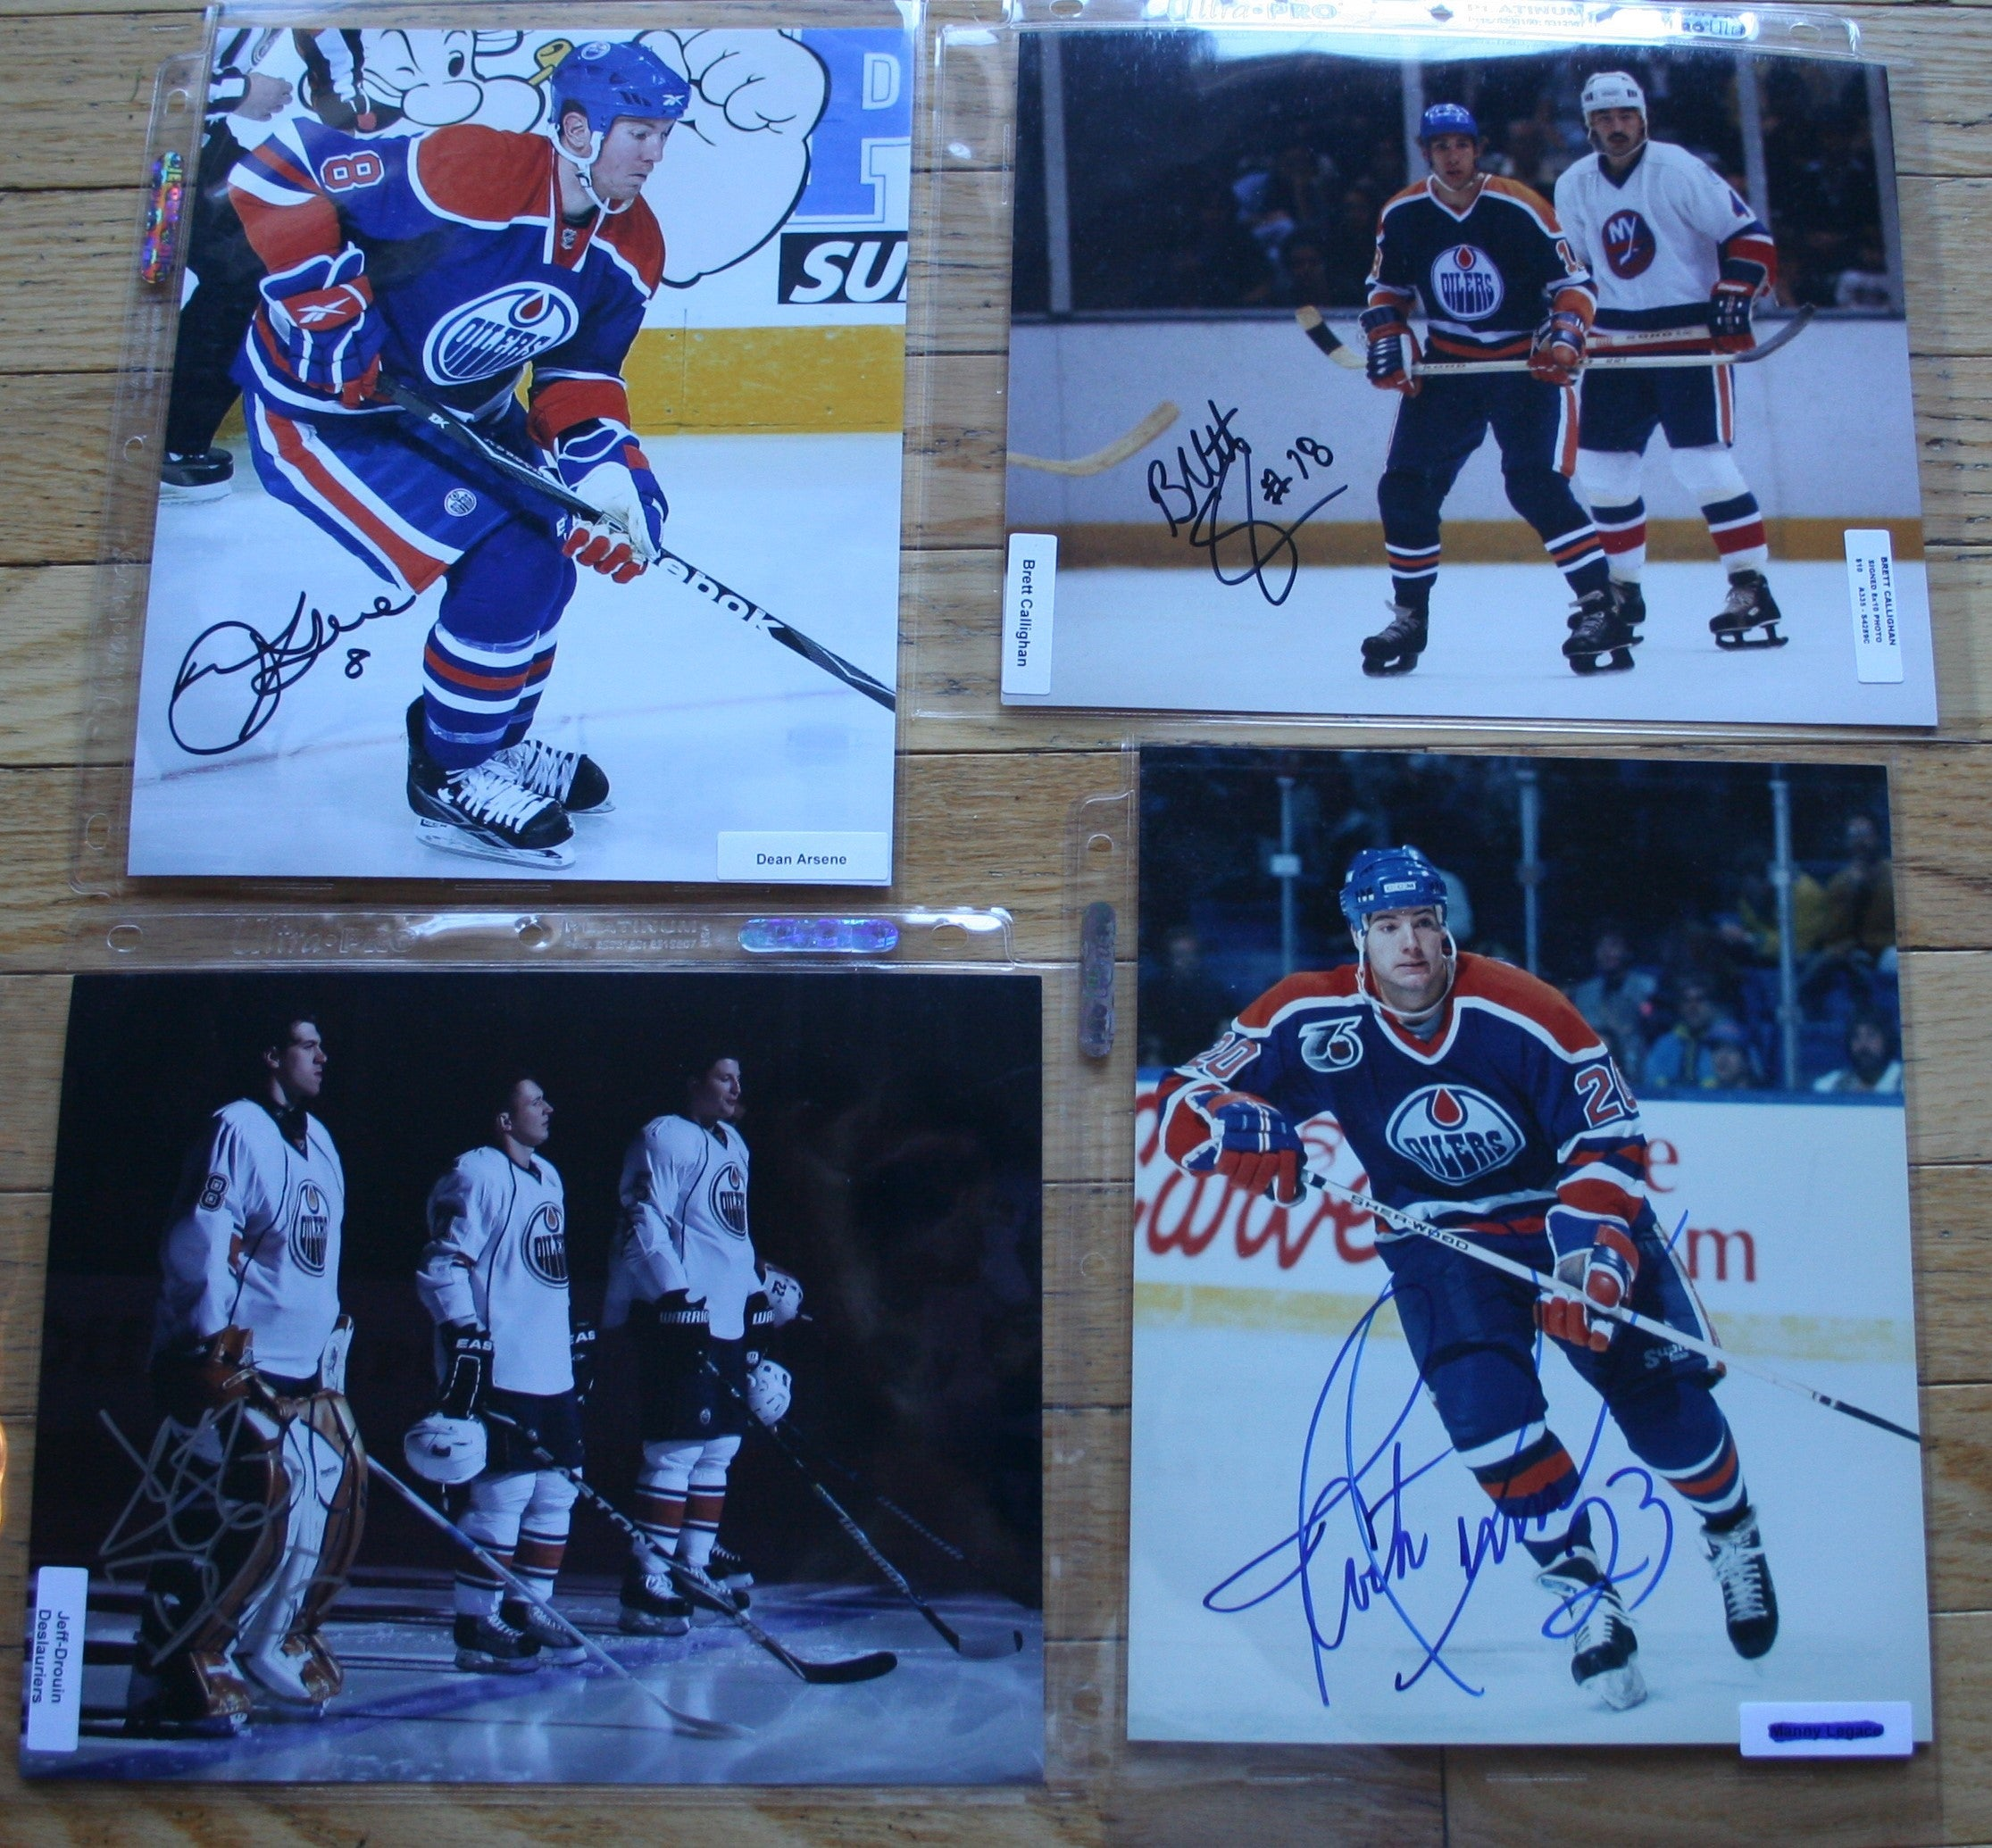 4 Signed Edmonton Oilers 8x10 Photos  Arsene, Callighan, Deslauriers, Gelinas   FREE SHIPPING  c/w COA  NHL Hockey Memorabilia